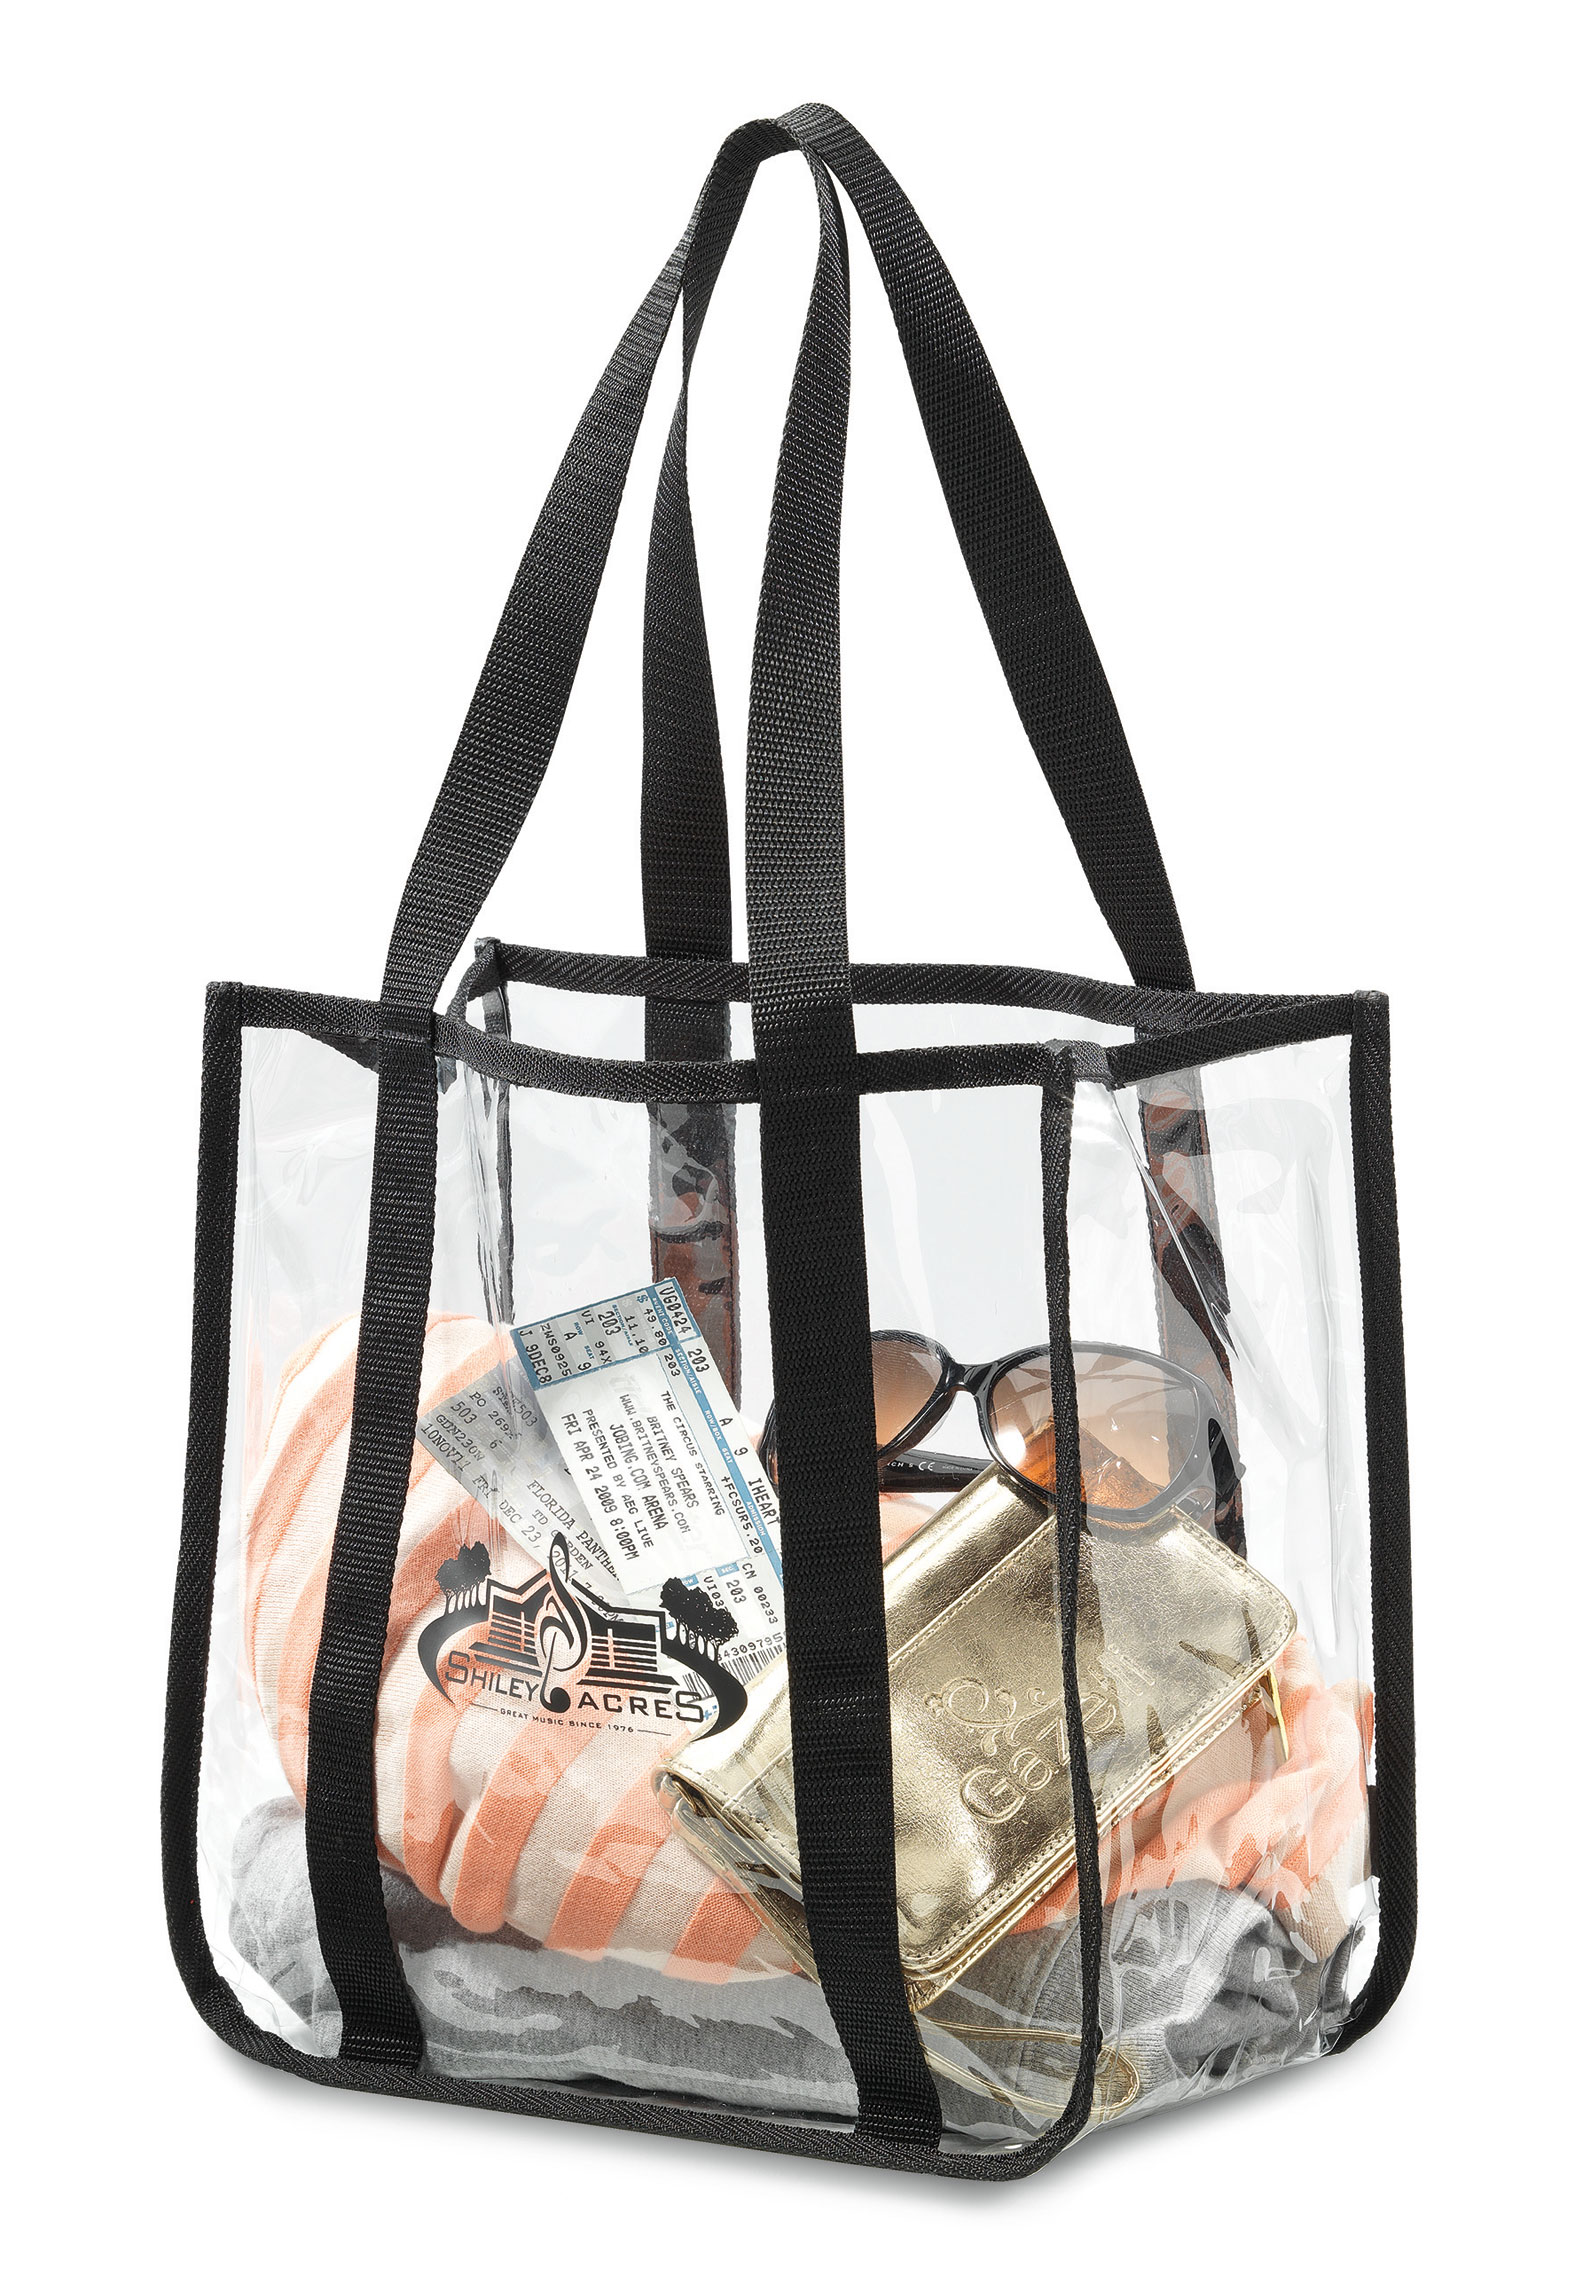 Clear Event Tote Bag